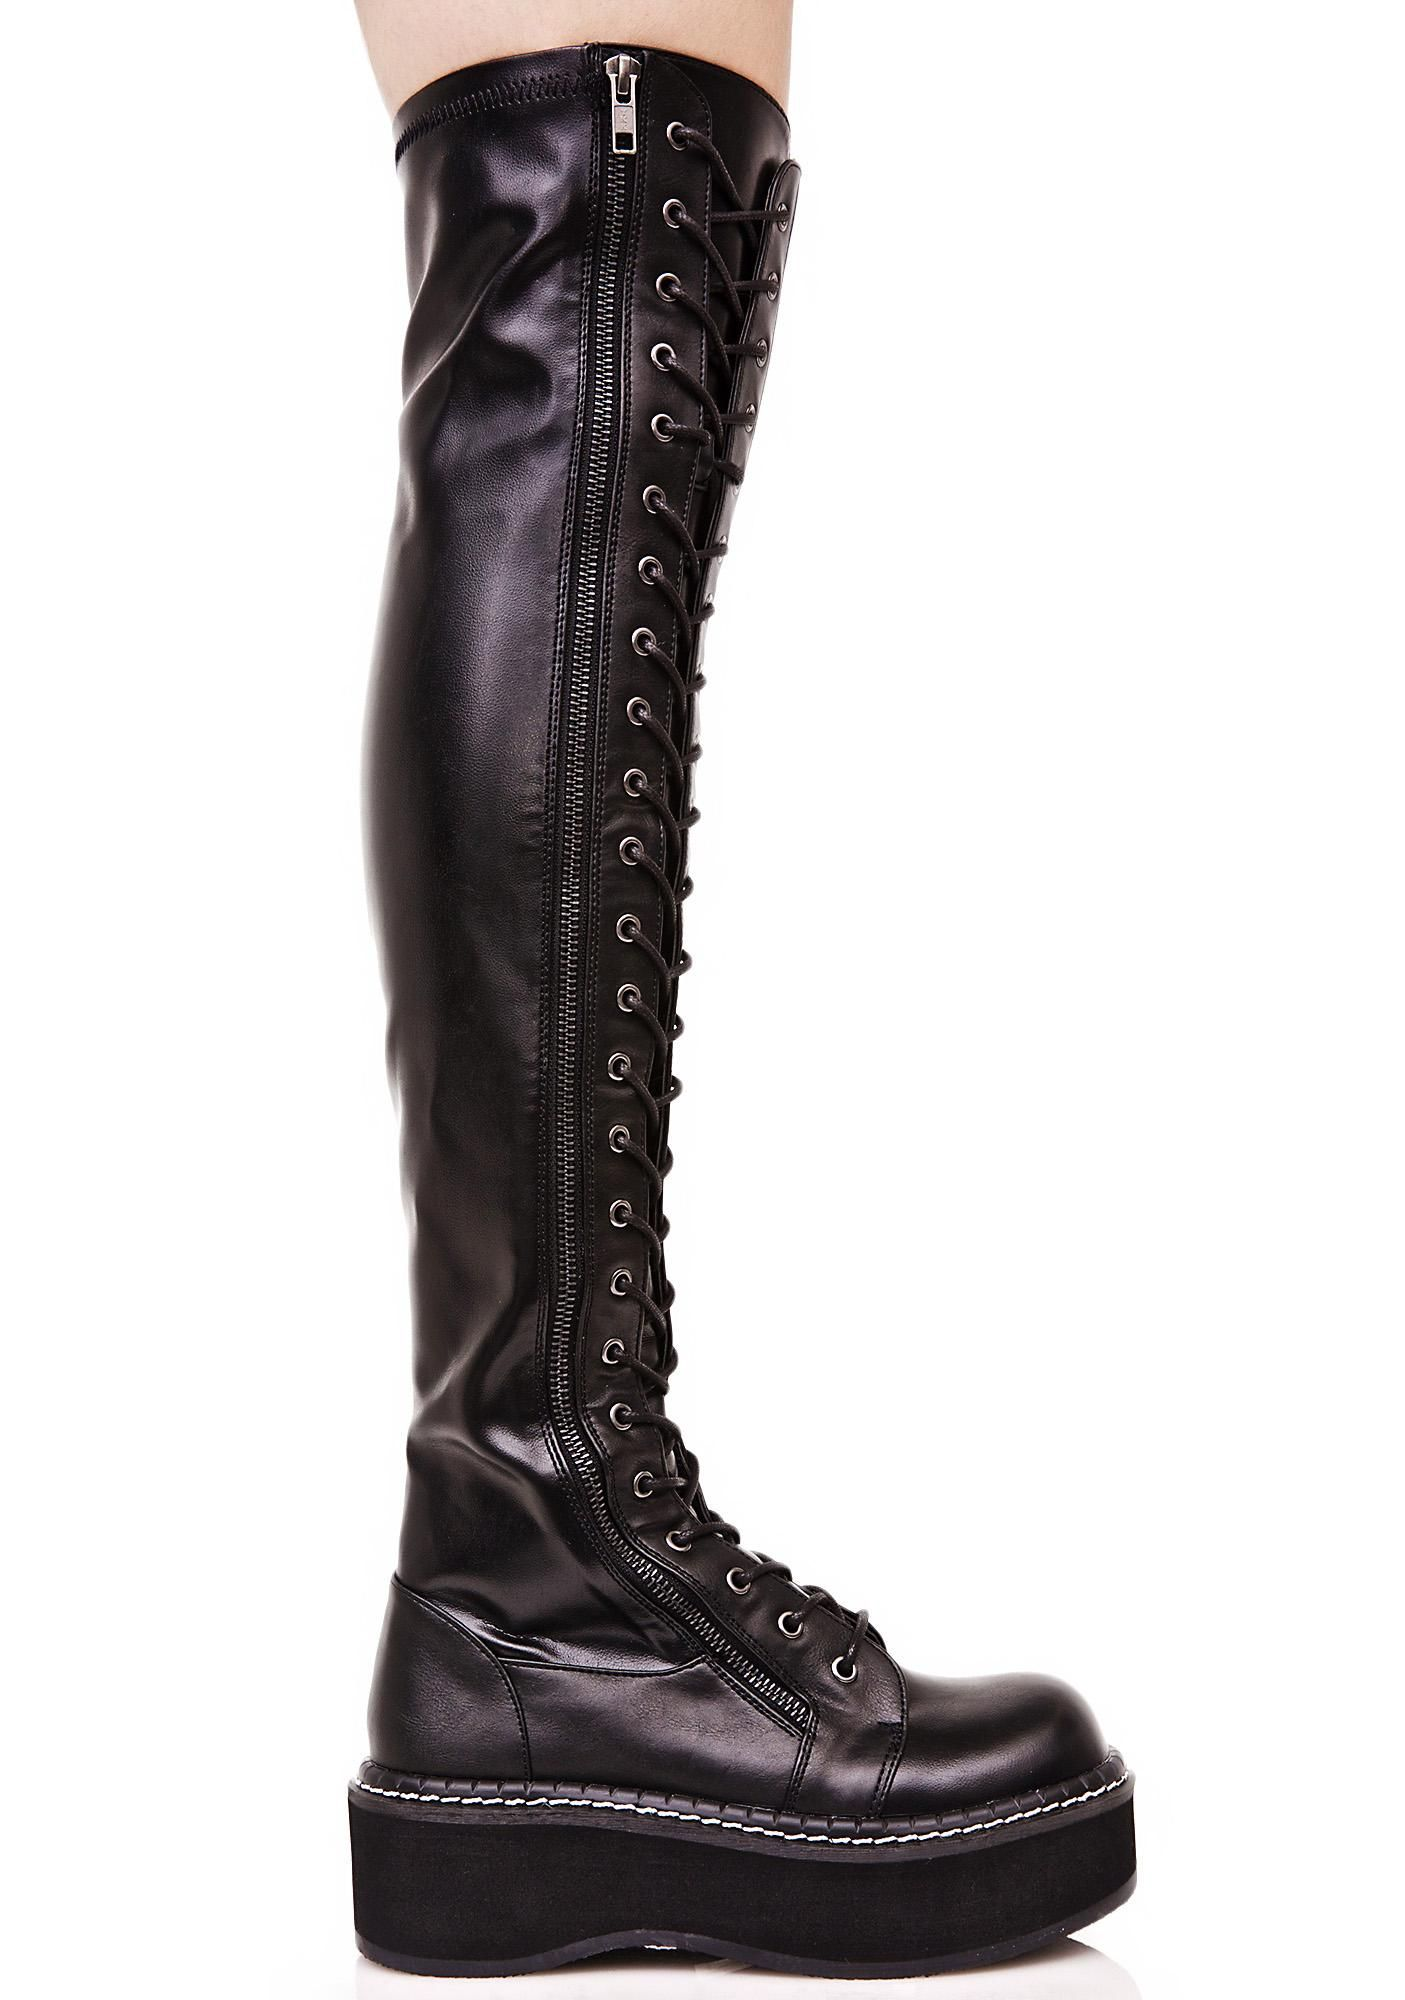 9f984de7050 Demonia Hellraiser Lace-Up Boot